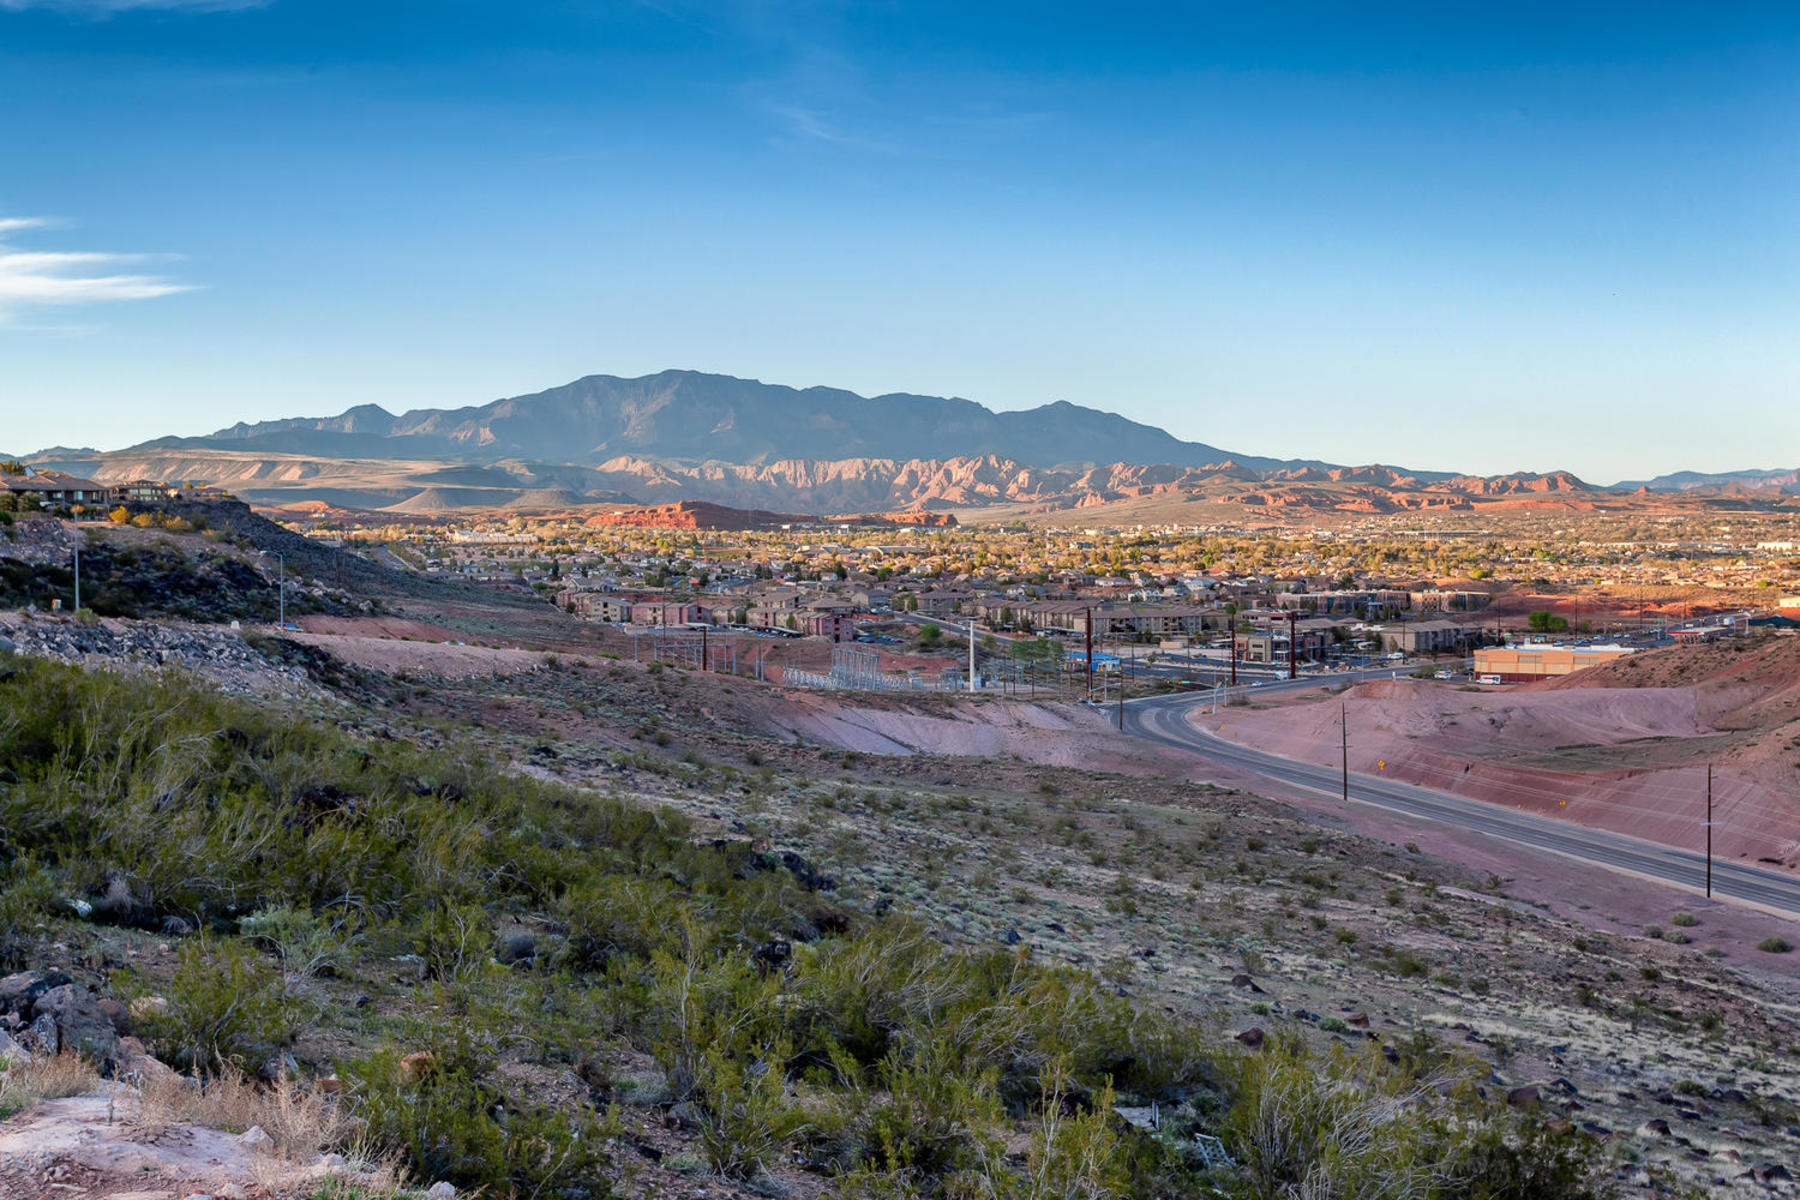 Terreno para Venda às Walkout Lot on Foremaster Ridge 1867 E 910 Cir S Lot 64 St. George, Utah, 84790 Estados Unidos